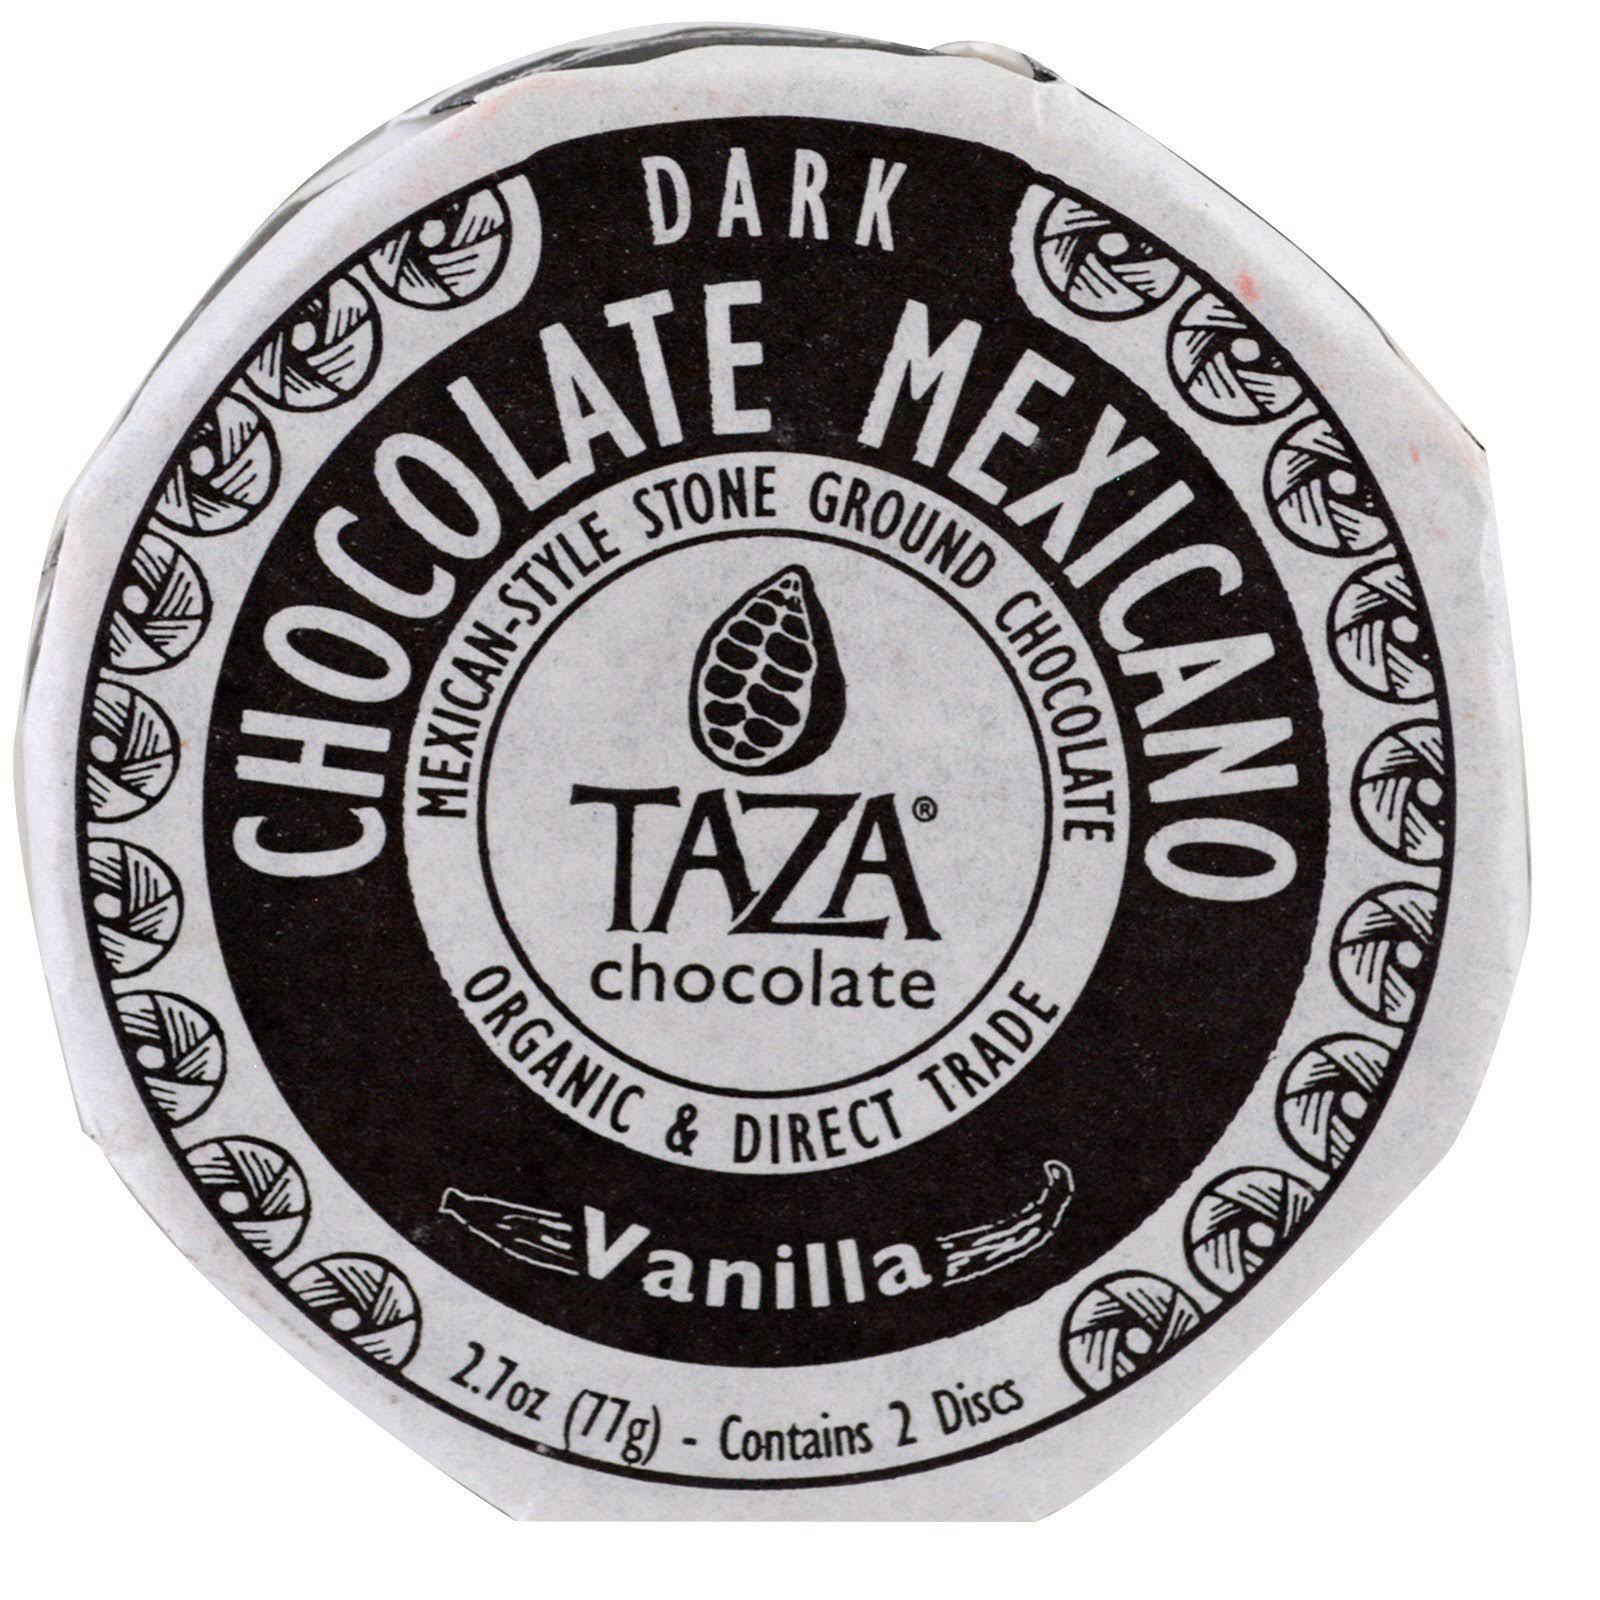 Taza Chocolate Mexicano Chocolate Disc - Vanilla, 2.7oz